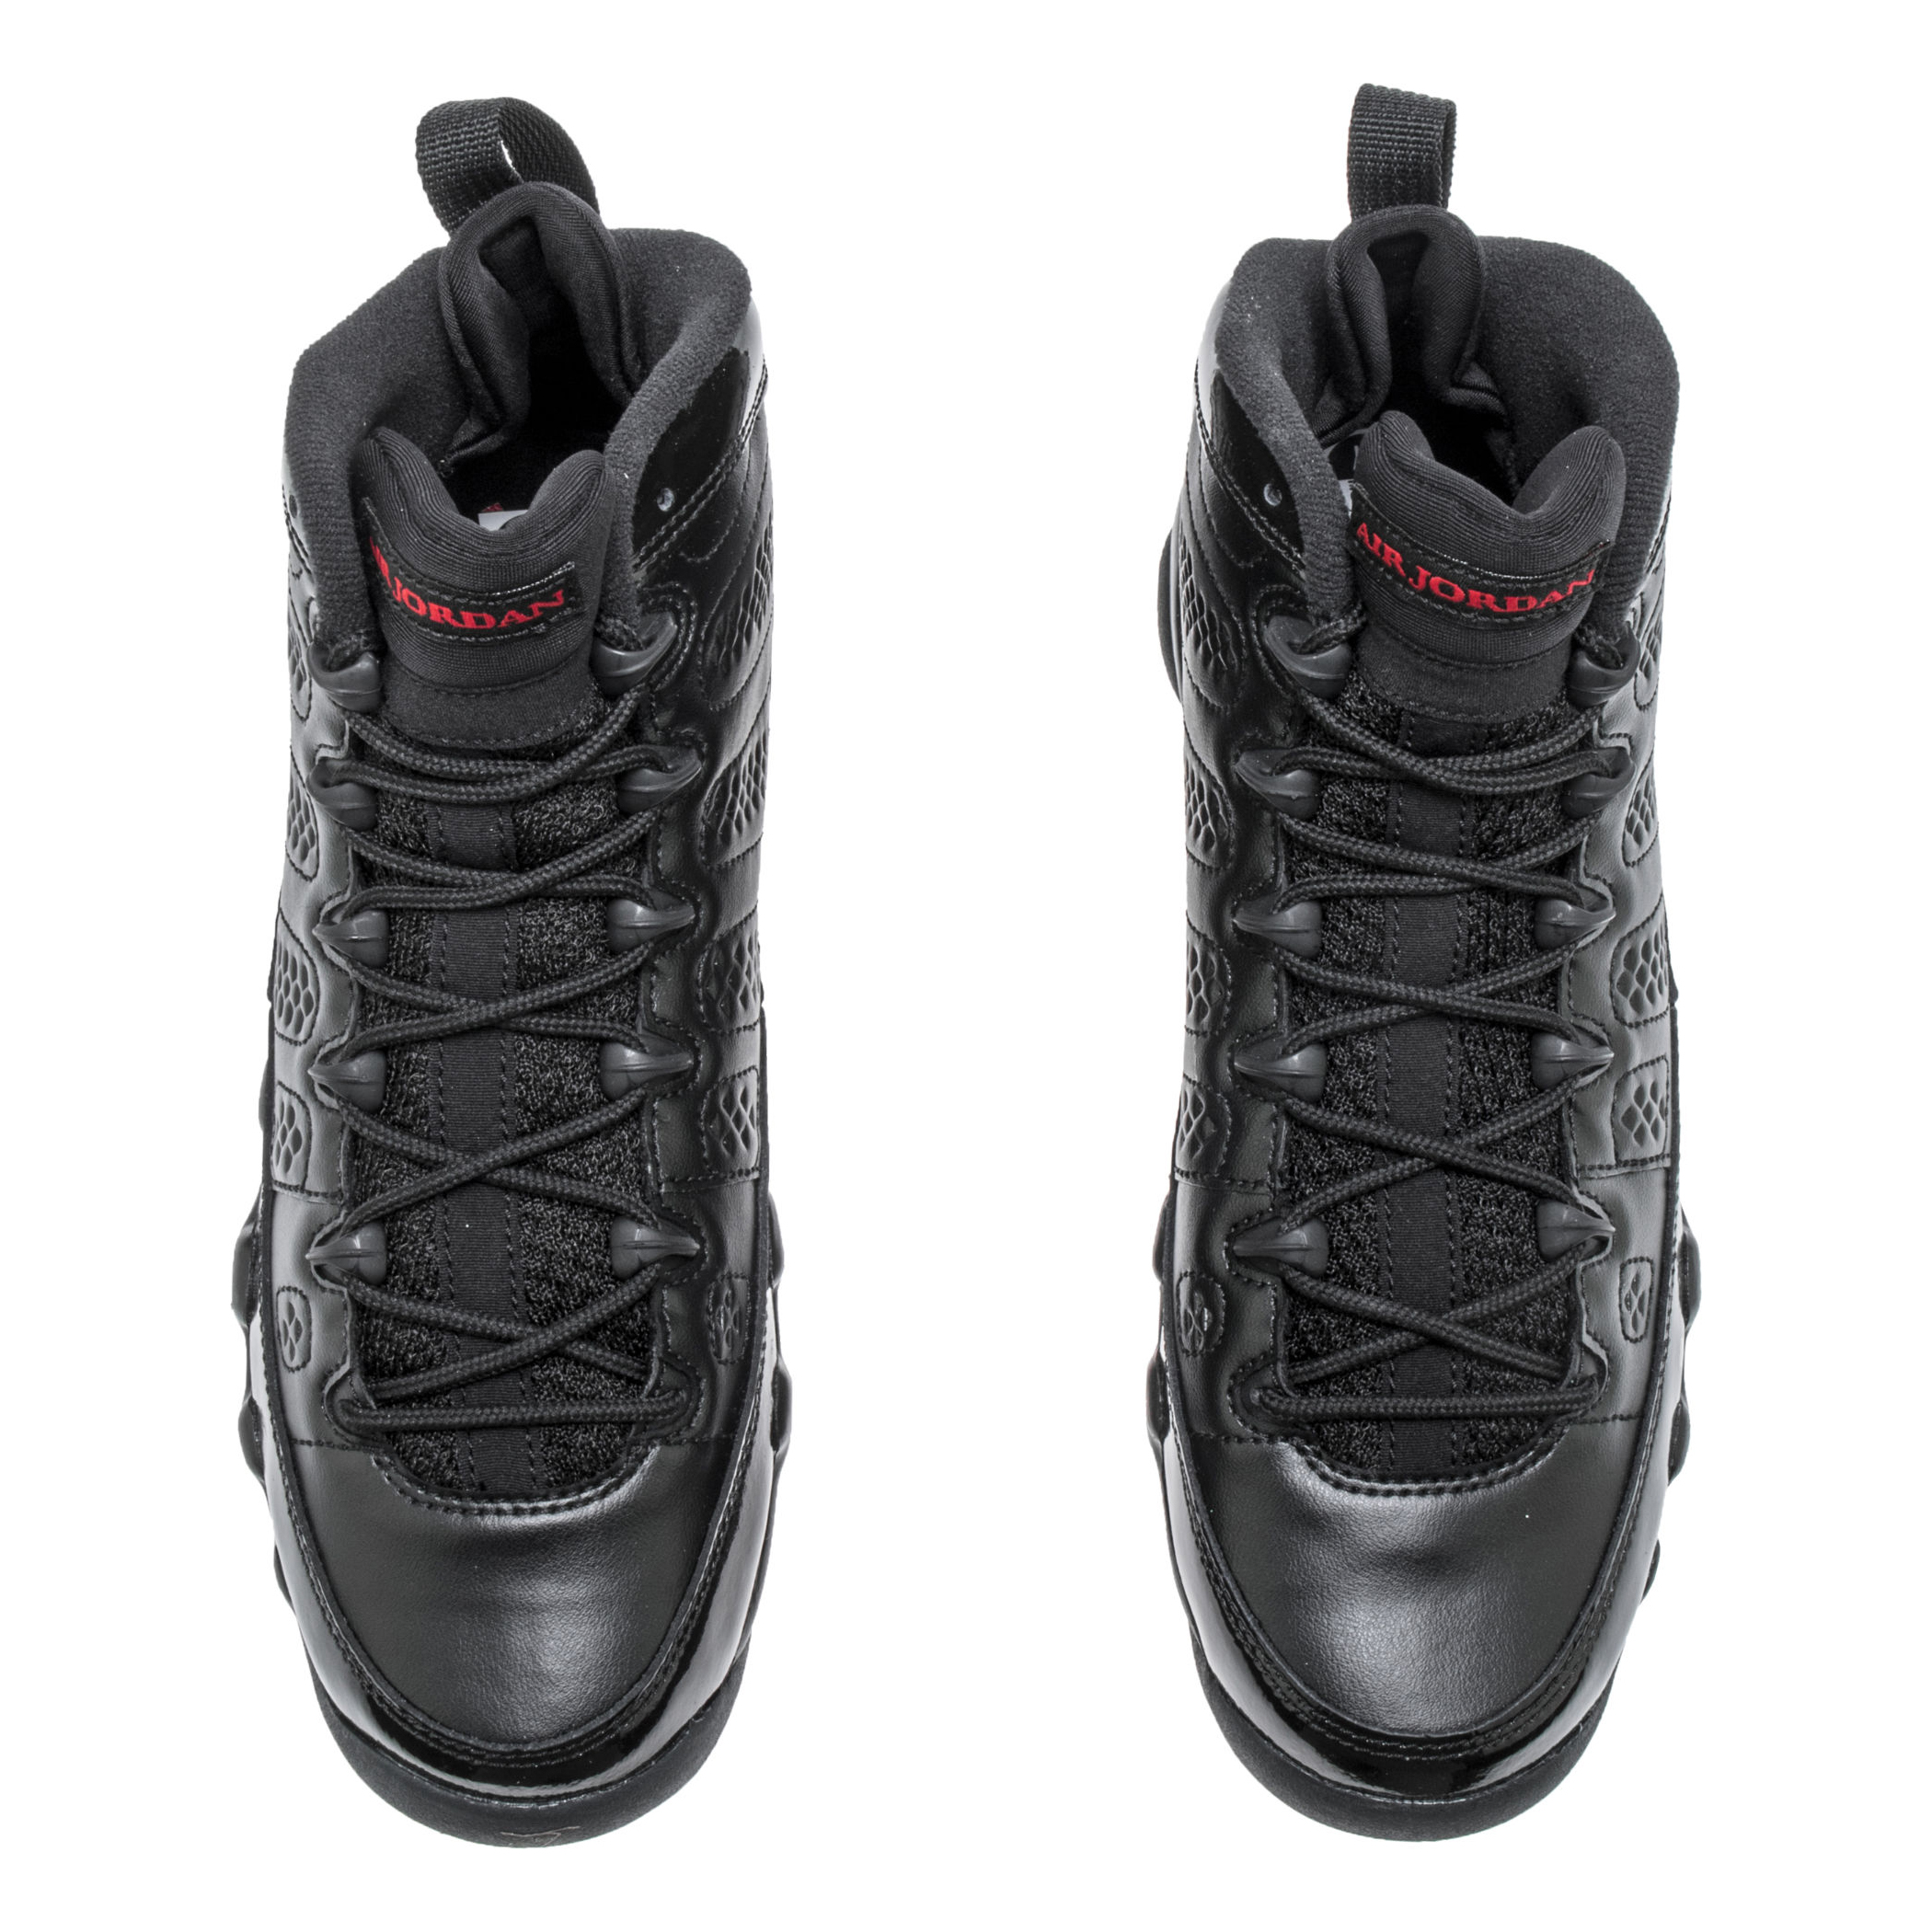 best website 61fde de3dd The Air Jordan 9 in Black/University Red Drops for March ...